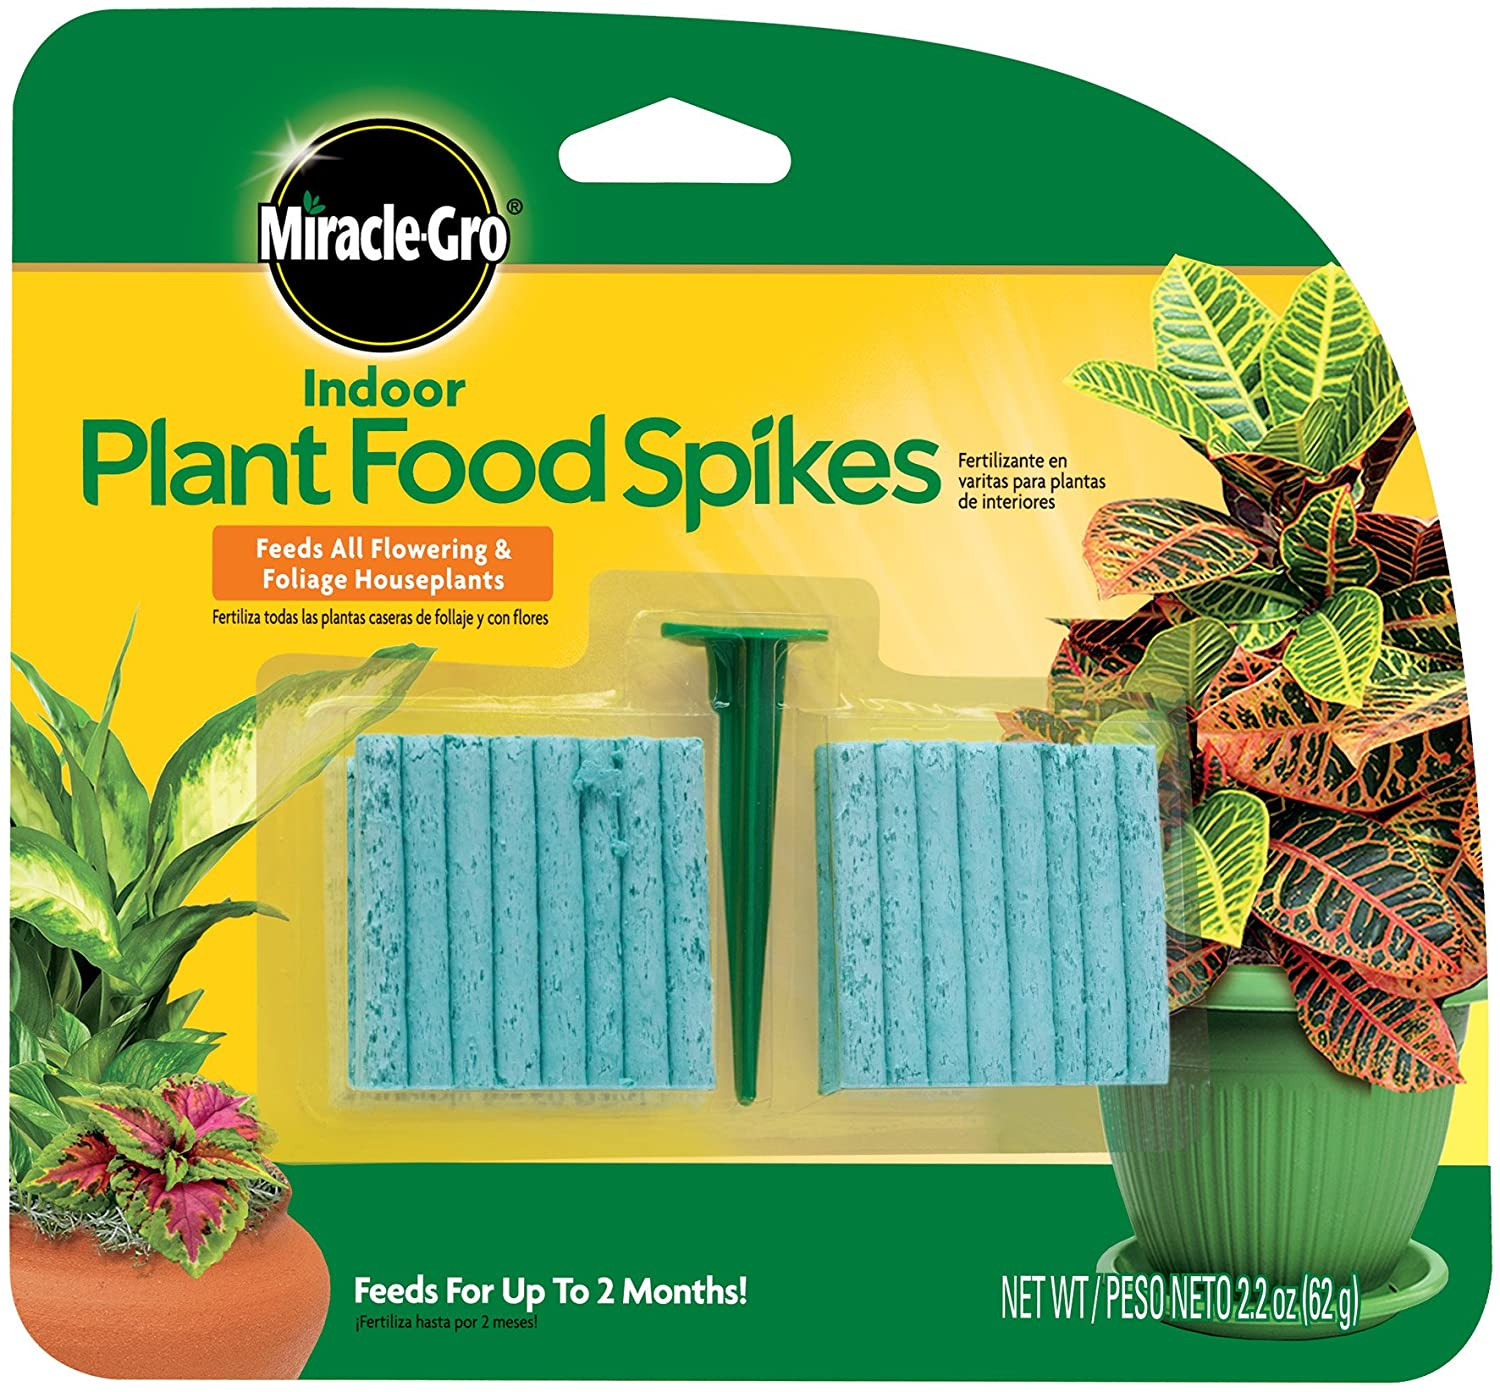 How to use Fertilizers Spike for Indoor Plants